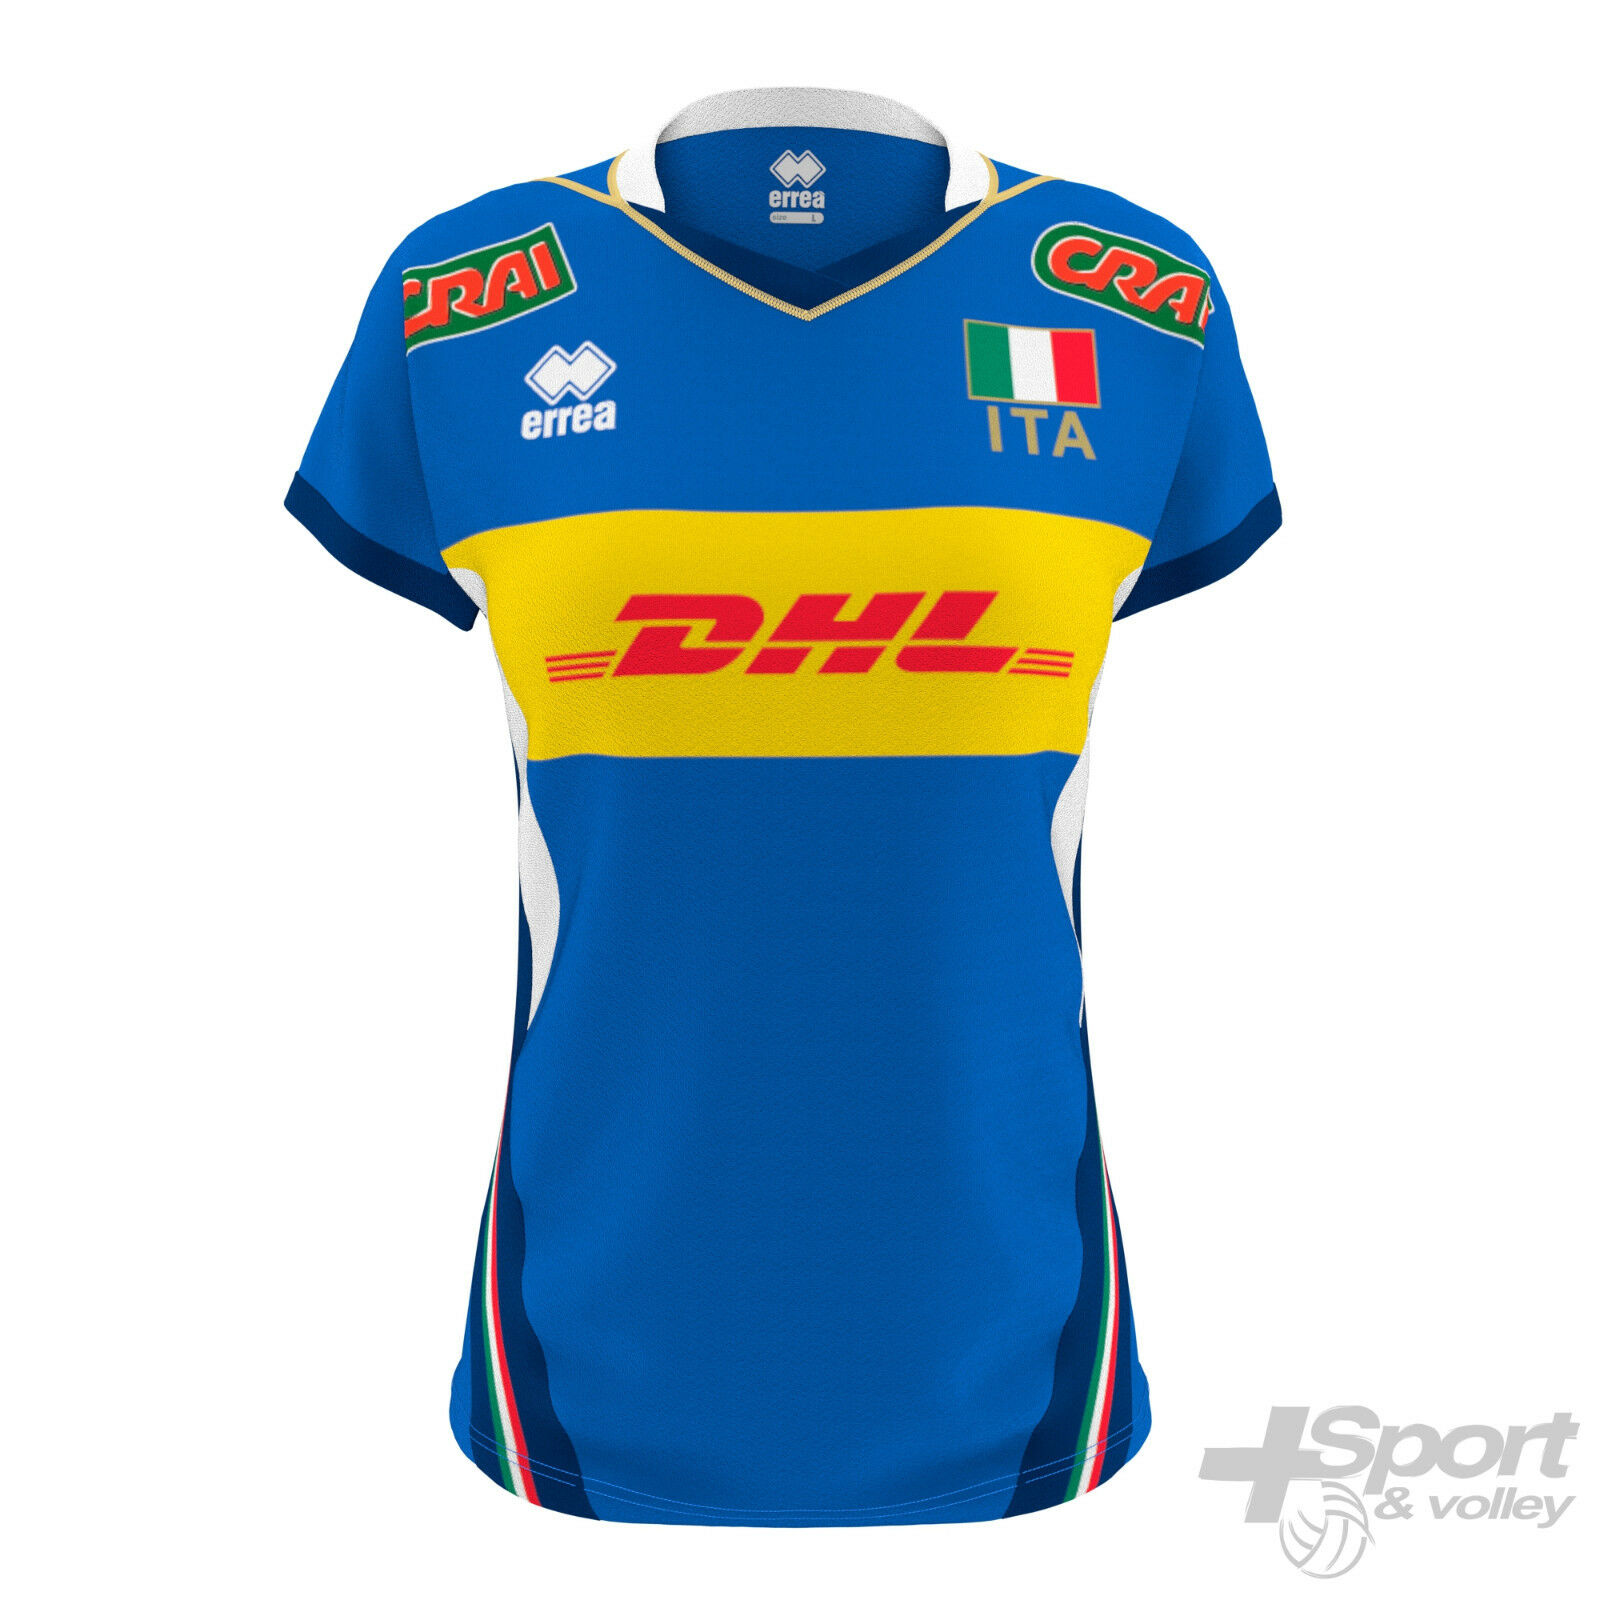 Replica jersey gara woman National  team Italie Volleyball - SMGS6C  after-sale protection